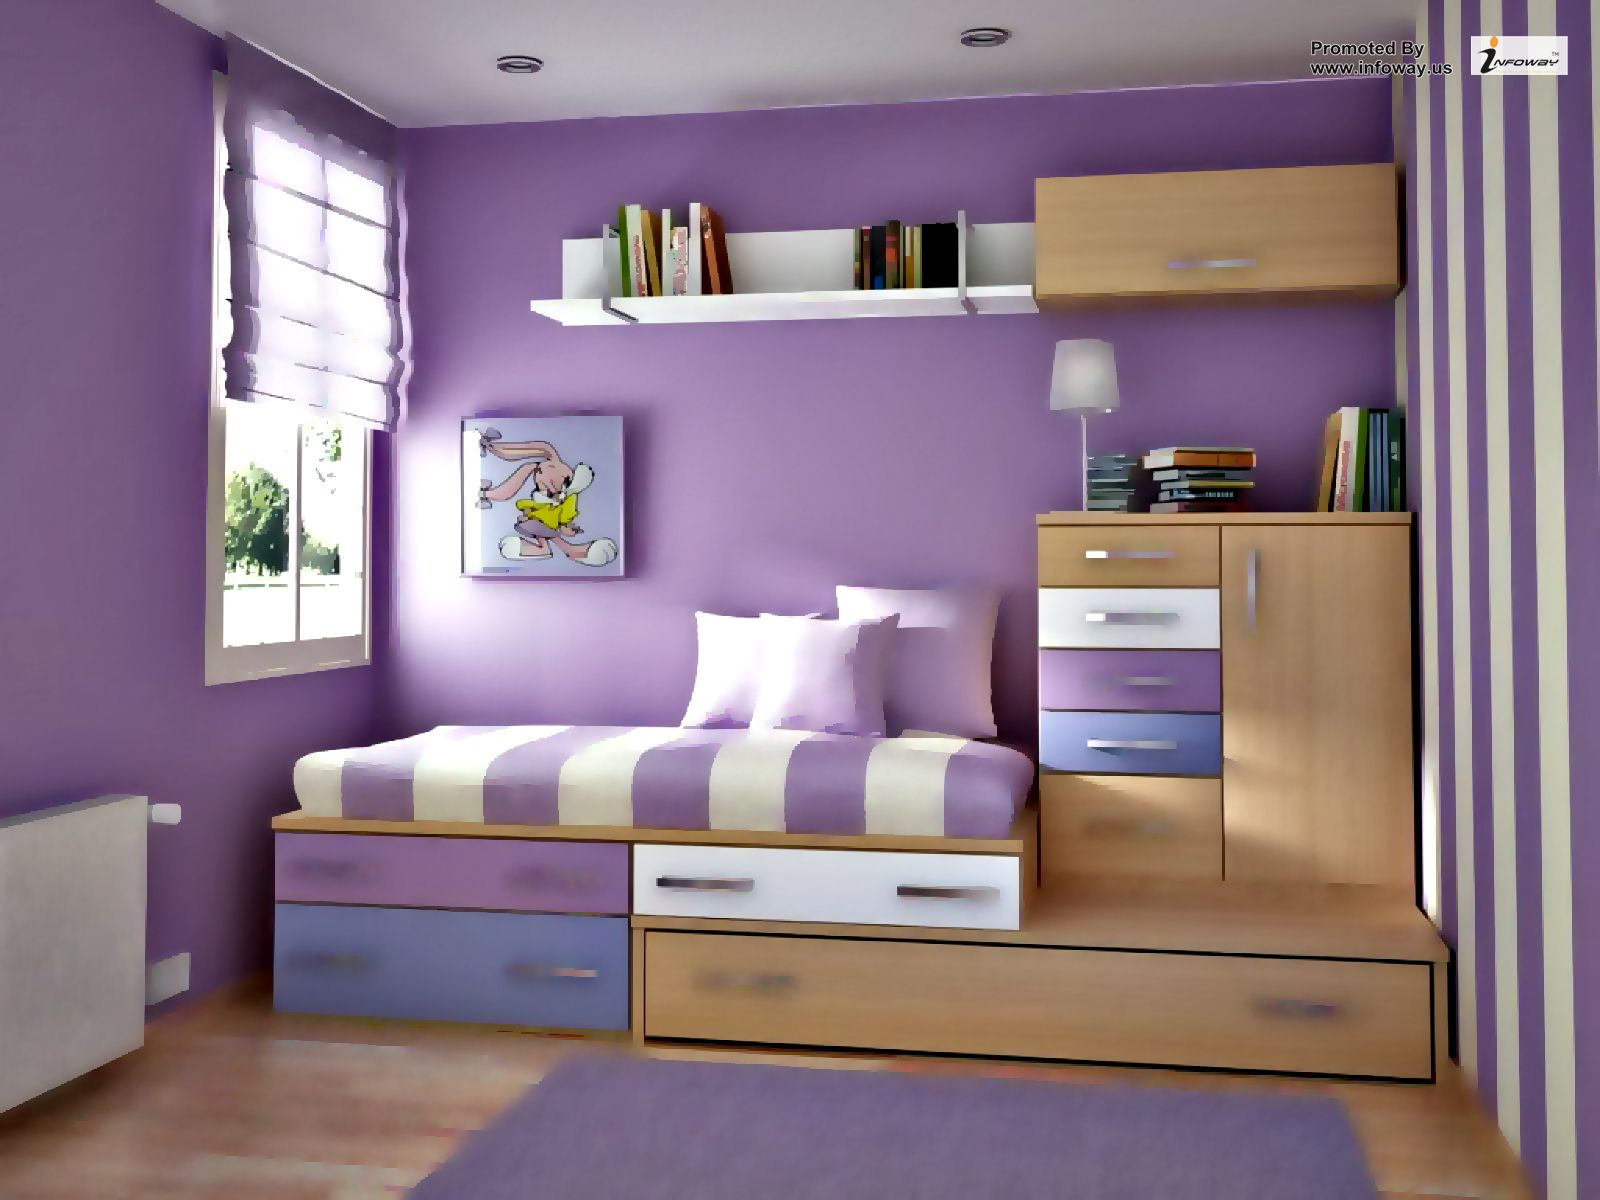 How To Paint A Room To Look Bigger - How to make a small bedroom look bigger